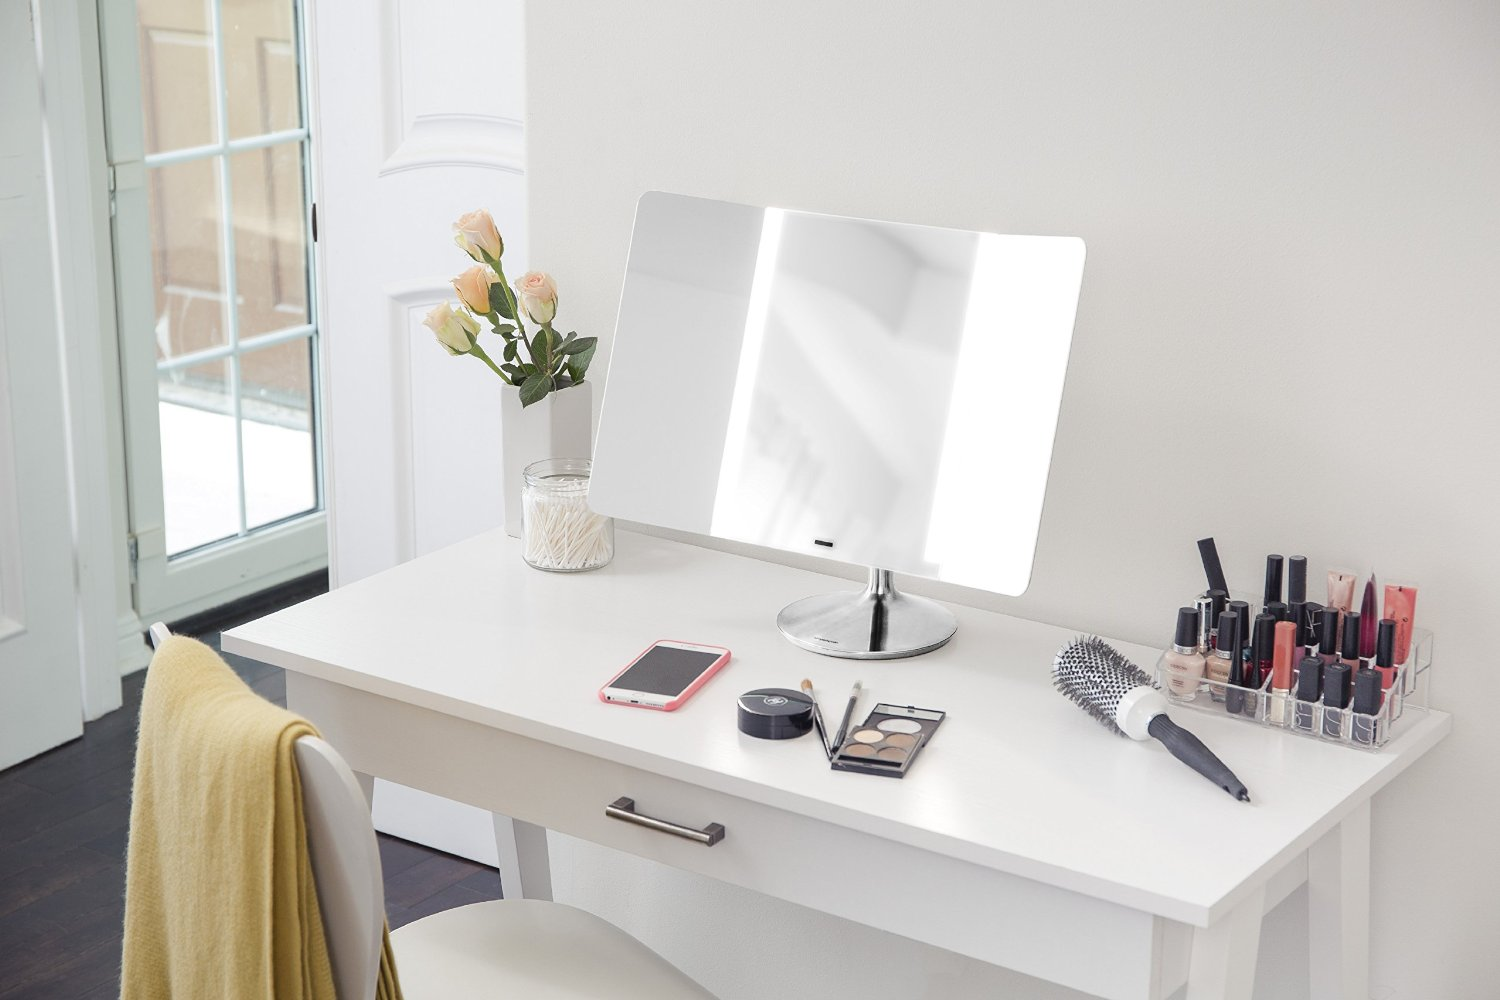 Simplehuman Sensor Mirror Pro Wide View Lighted Vanity